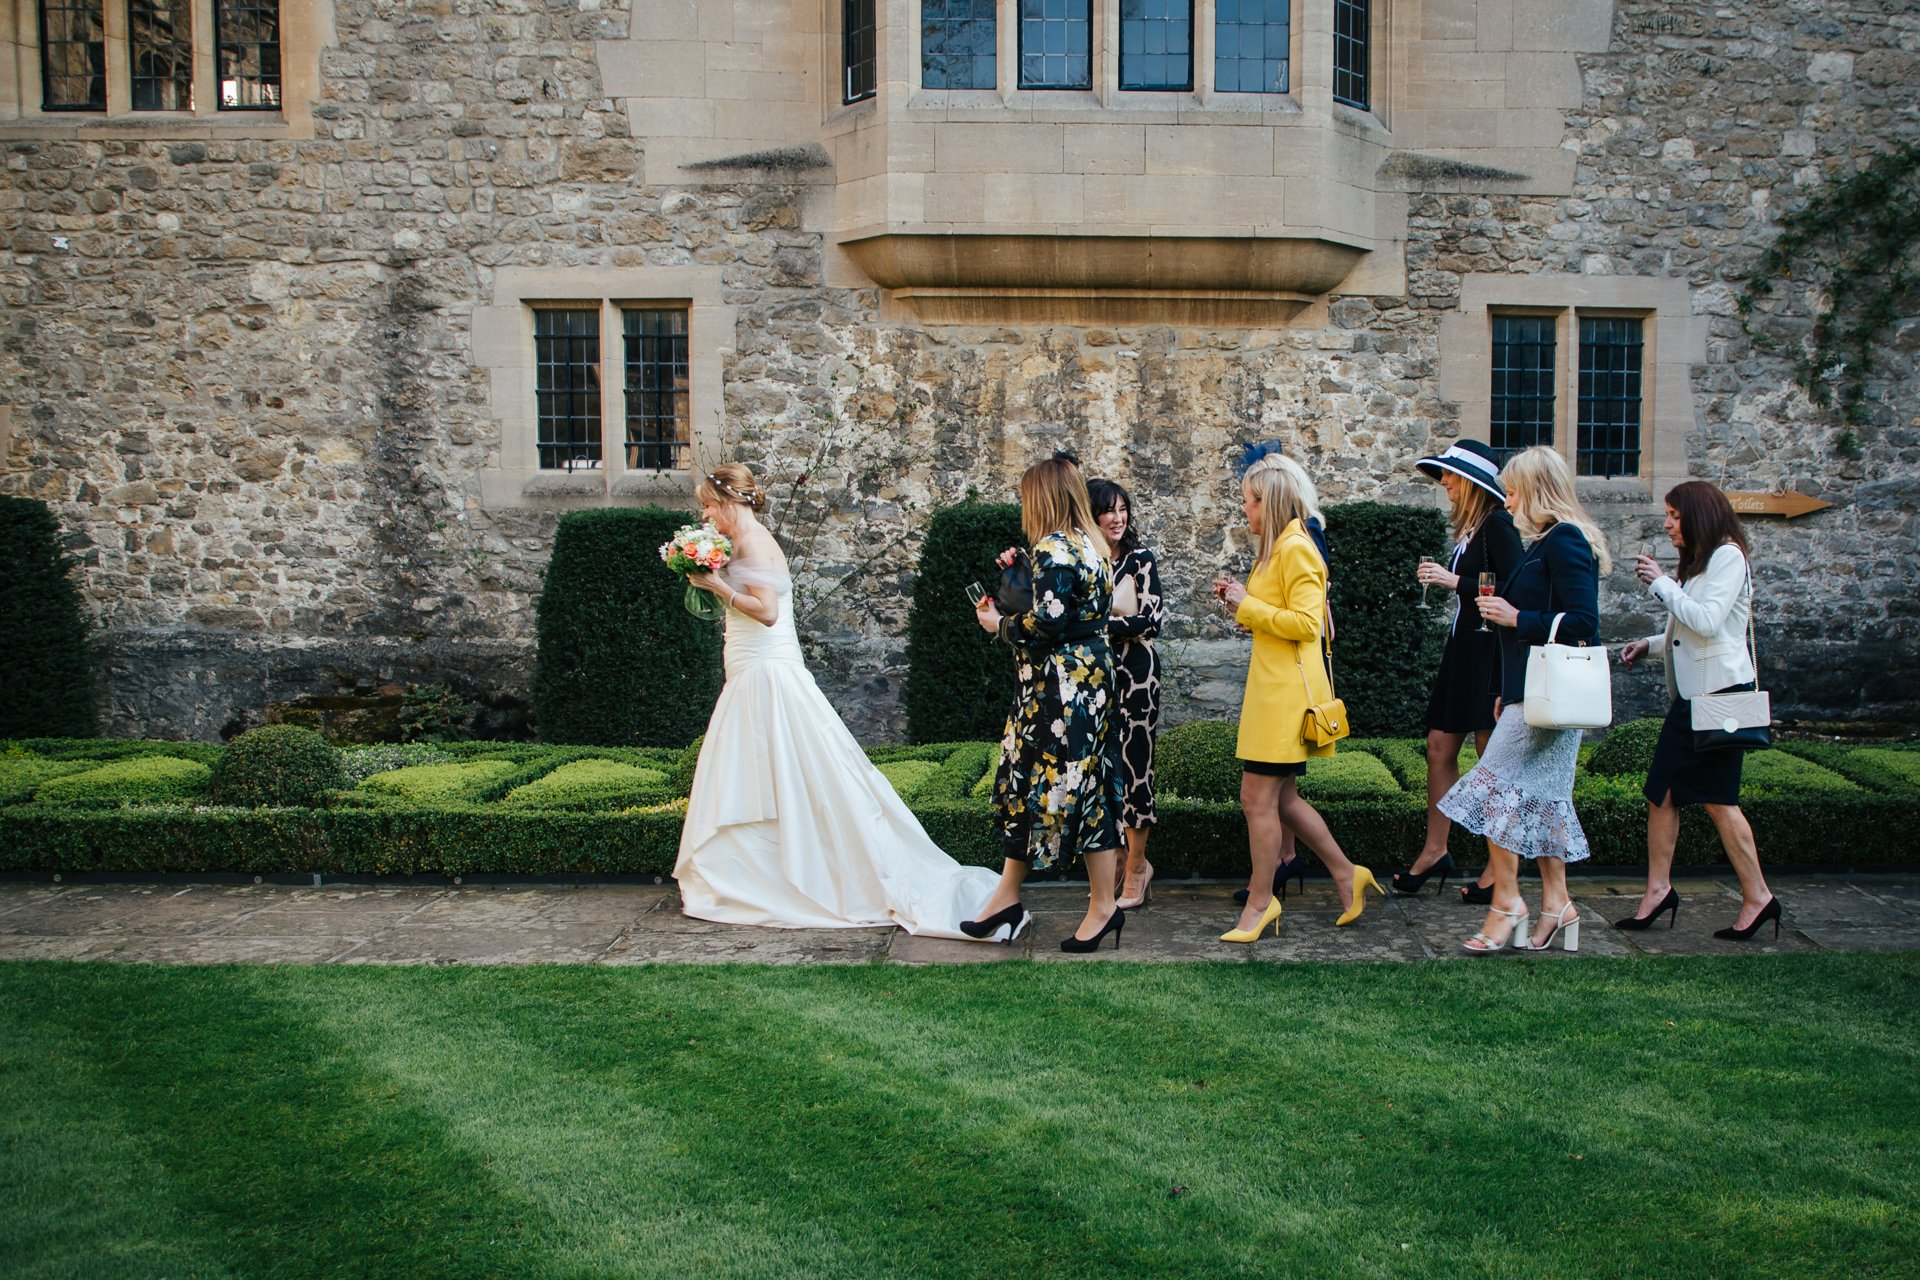 Bride and friends walking to Great Hall in Allington Castle